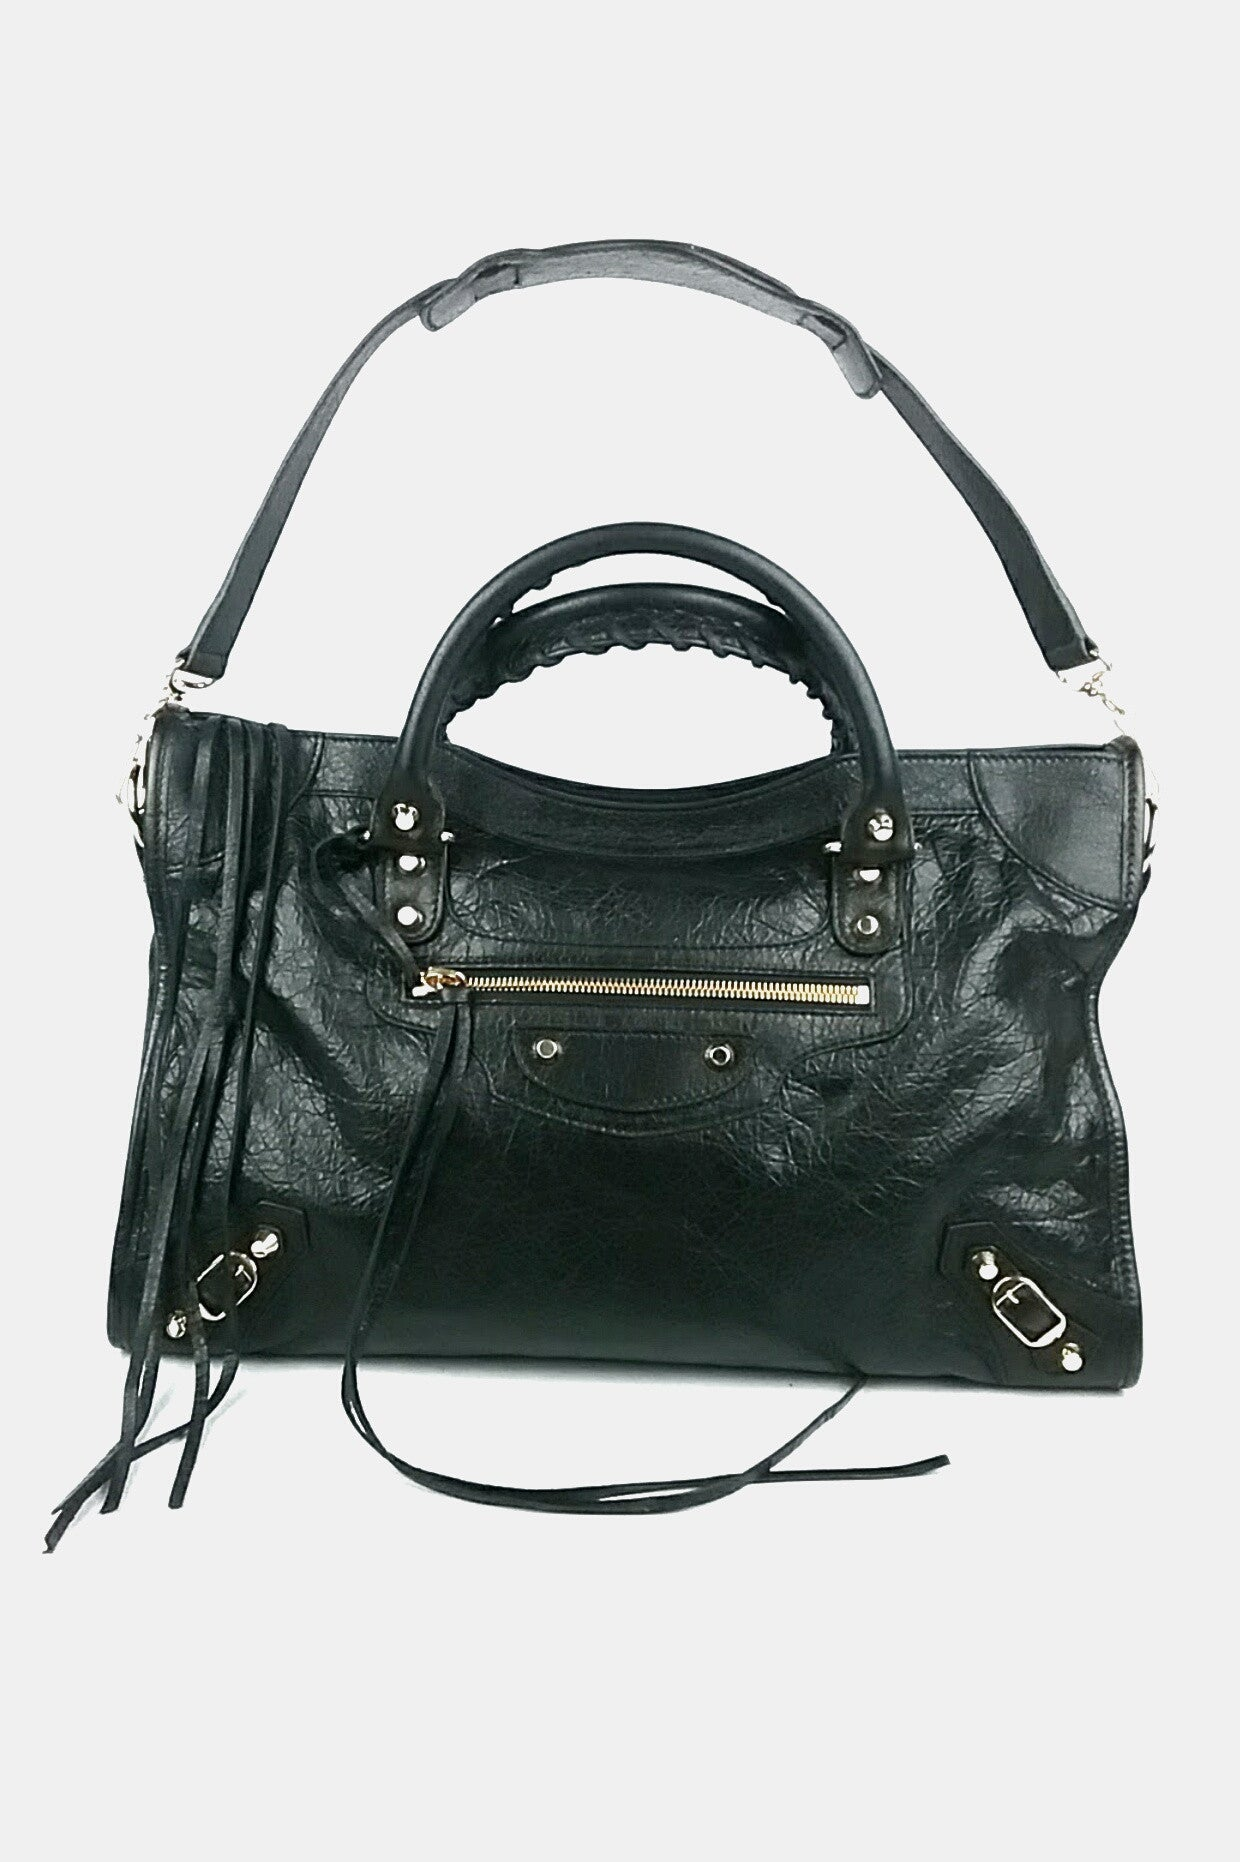 Black Leather City Bag with Gold Hardware